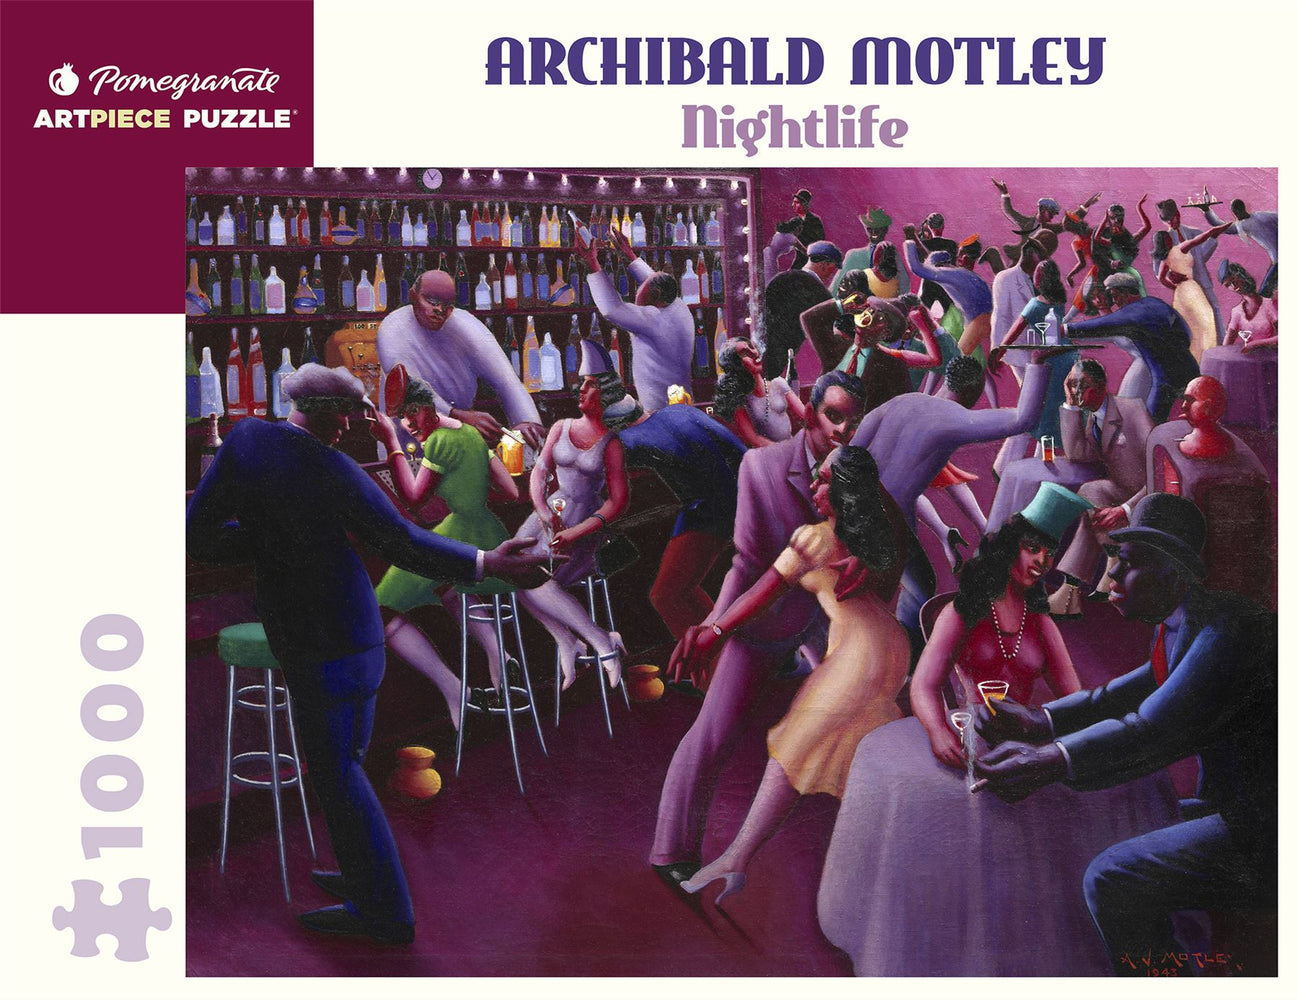 Archibald Motley: Nightlife 1000 Piece Jigsaw